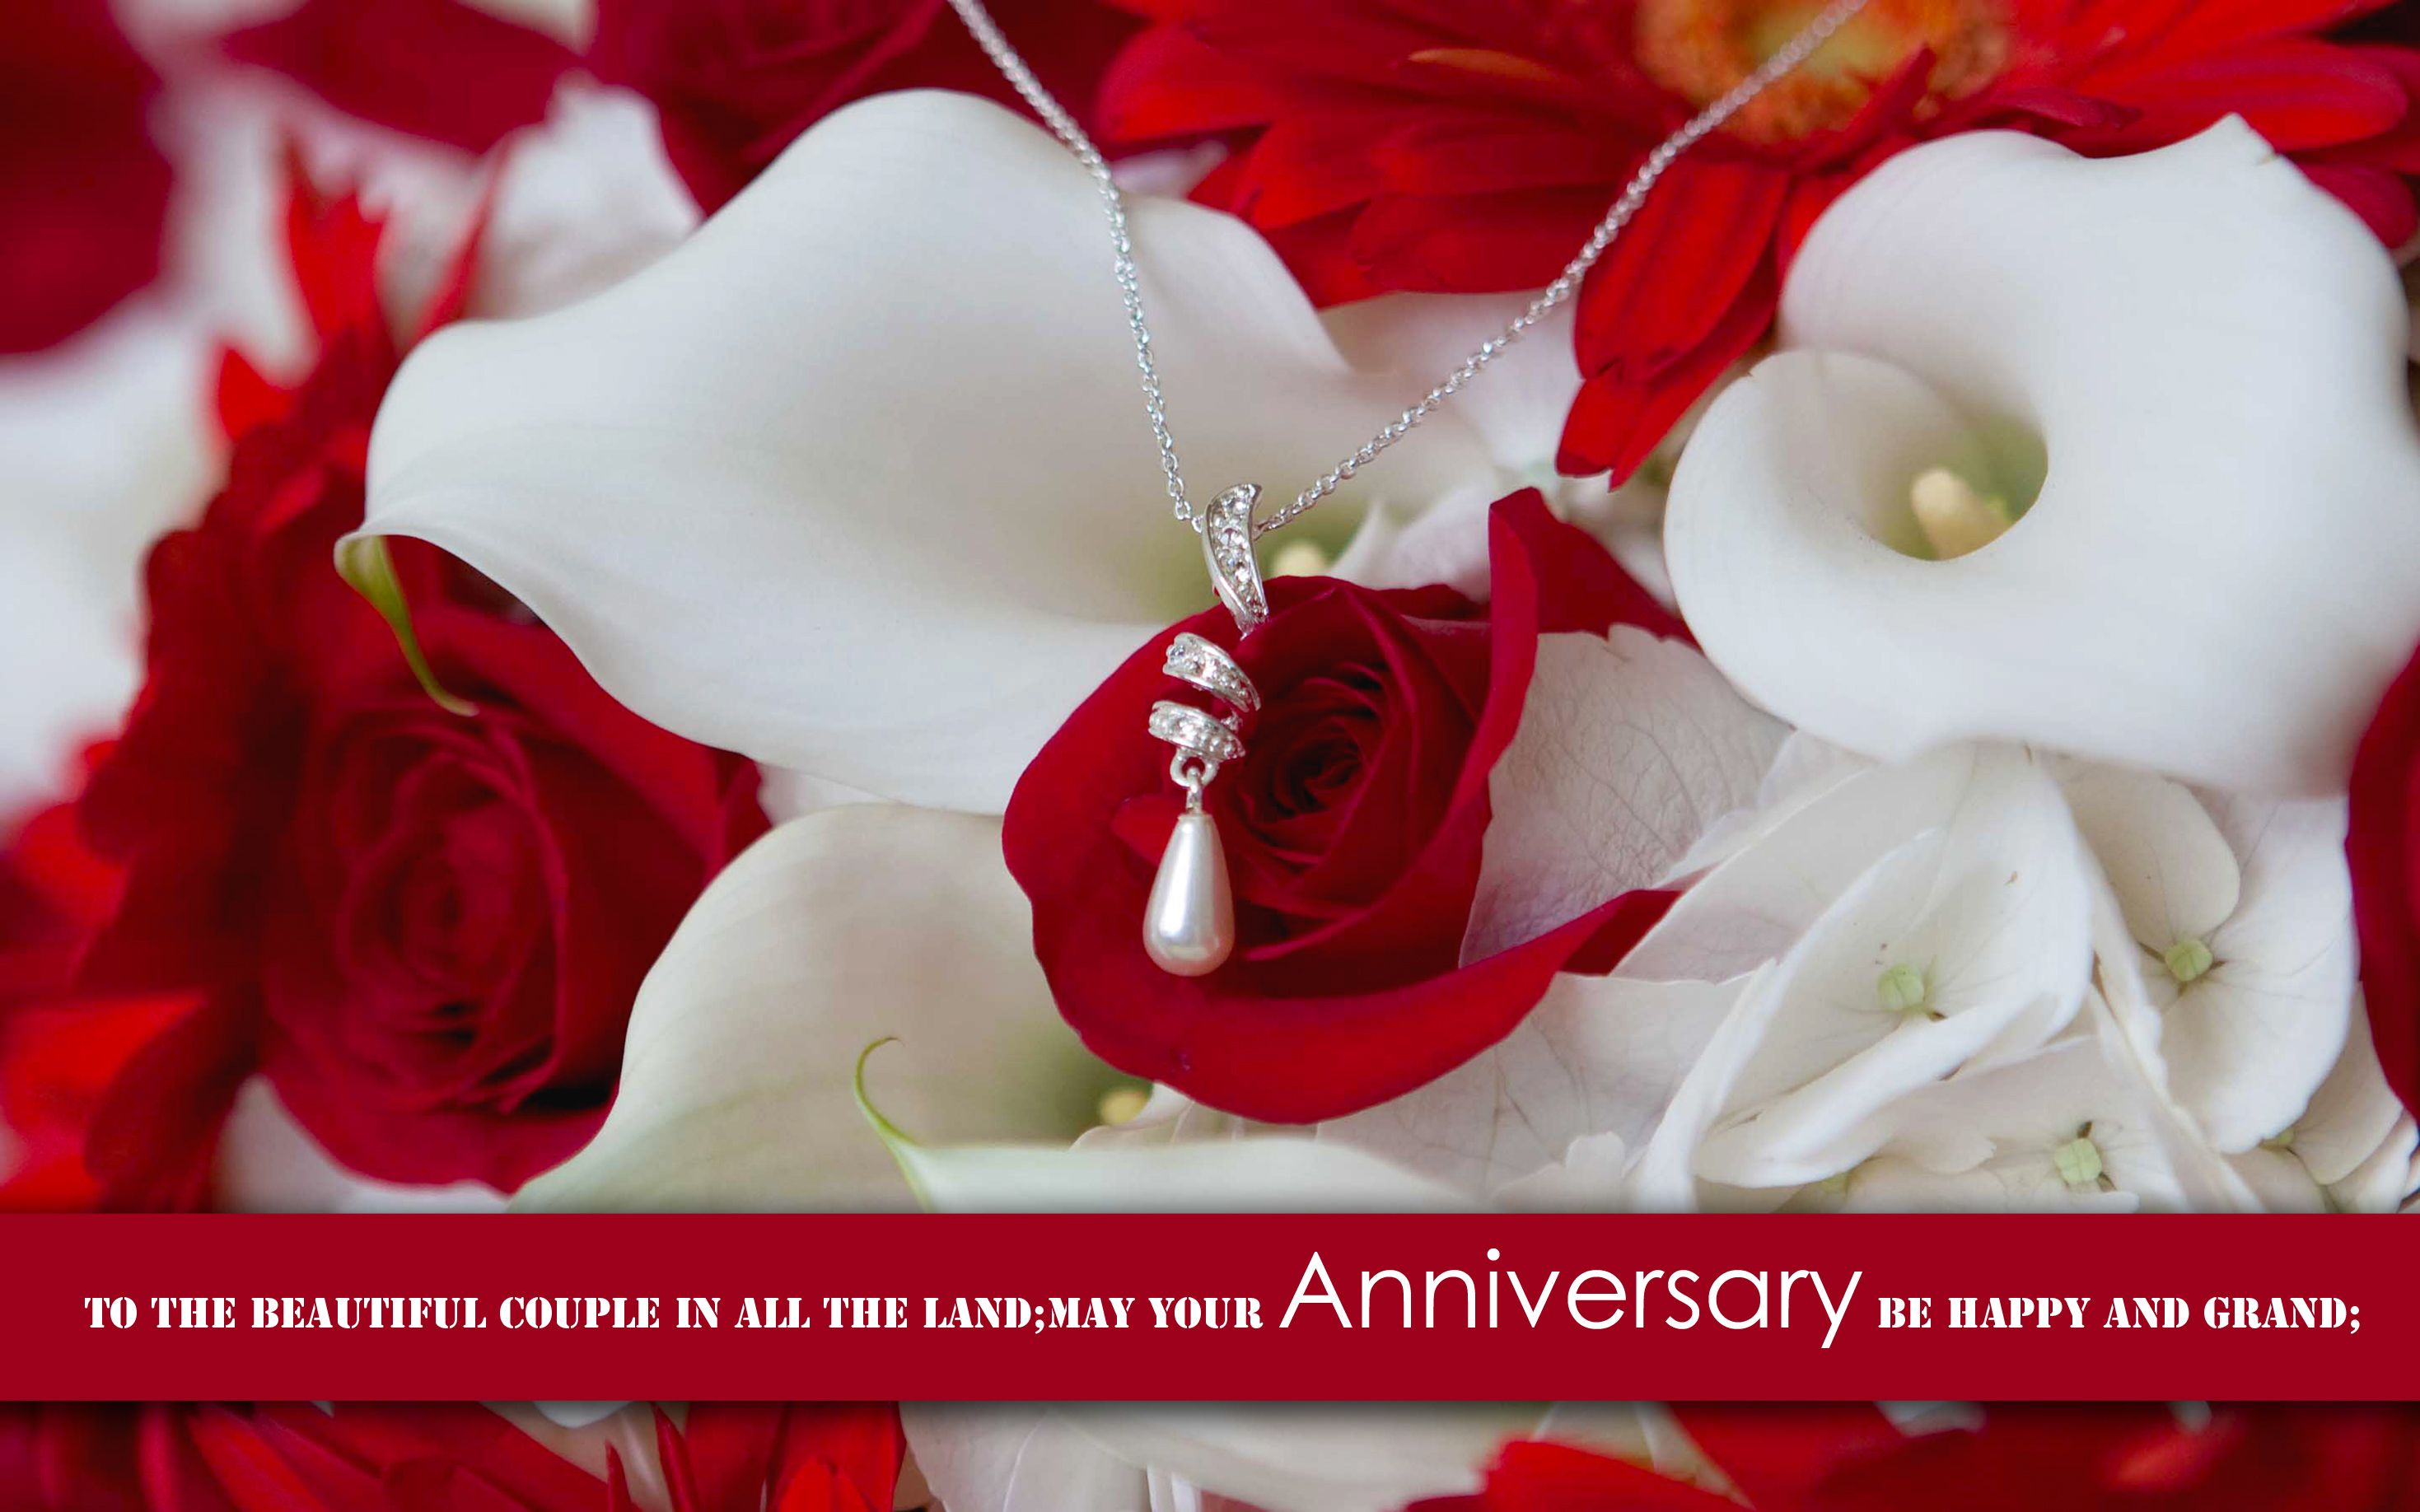 Happy Anniversary Images Free Download With Wishes Happy Rose Day Wallpaper Rose Day Wallpaper Happy Valentines Day Card